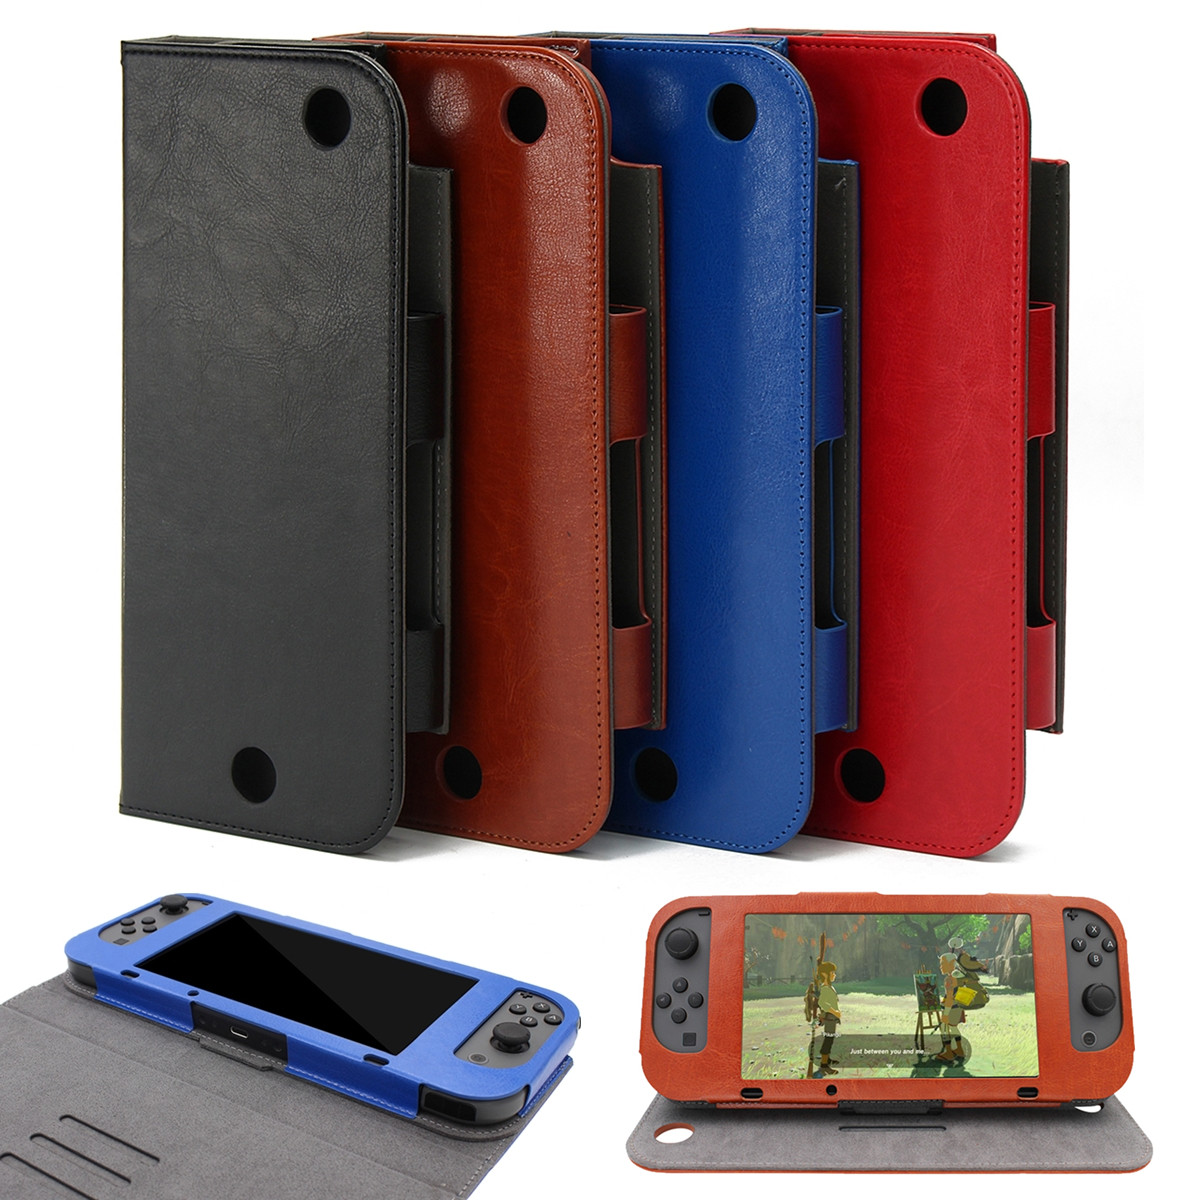 Magnetic PU Leather Protective Case Cover Skin Sleeve Stand For Nintendo Switch Game Console 24